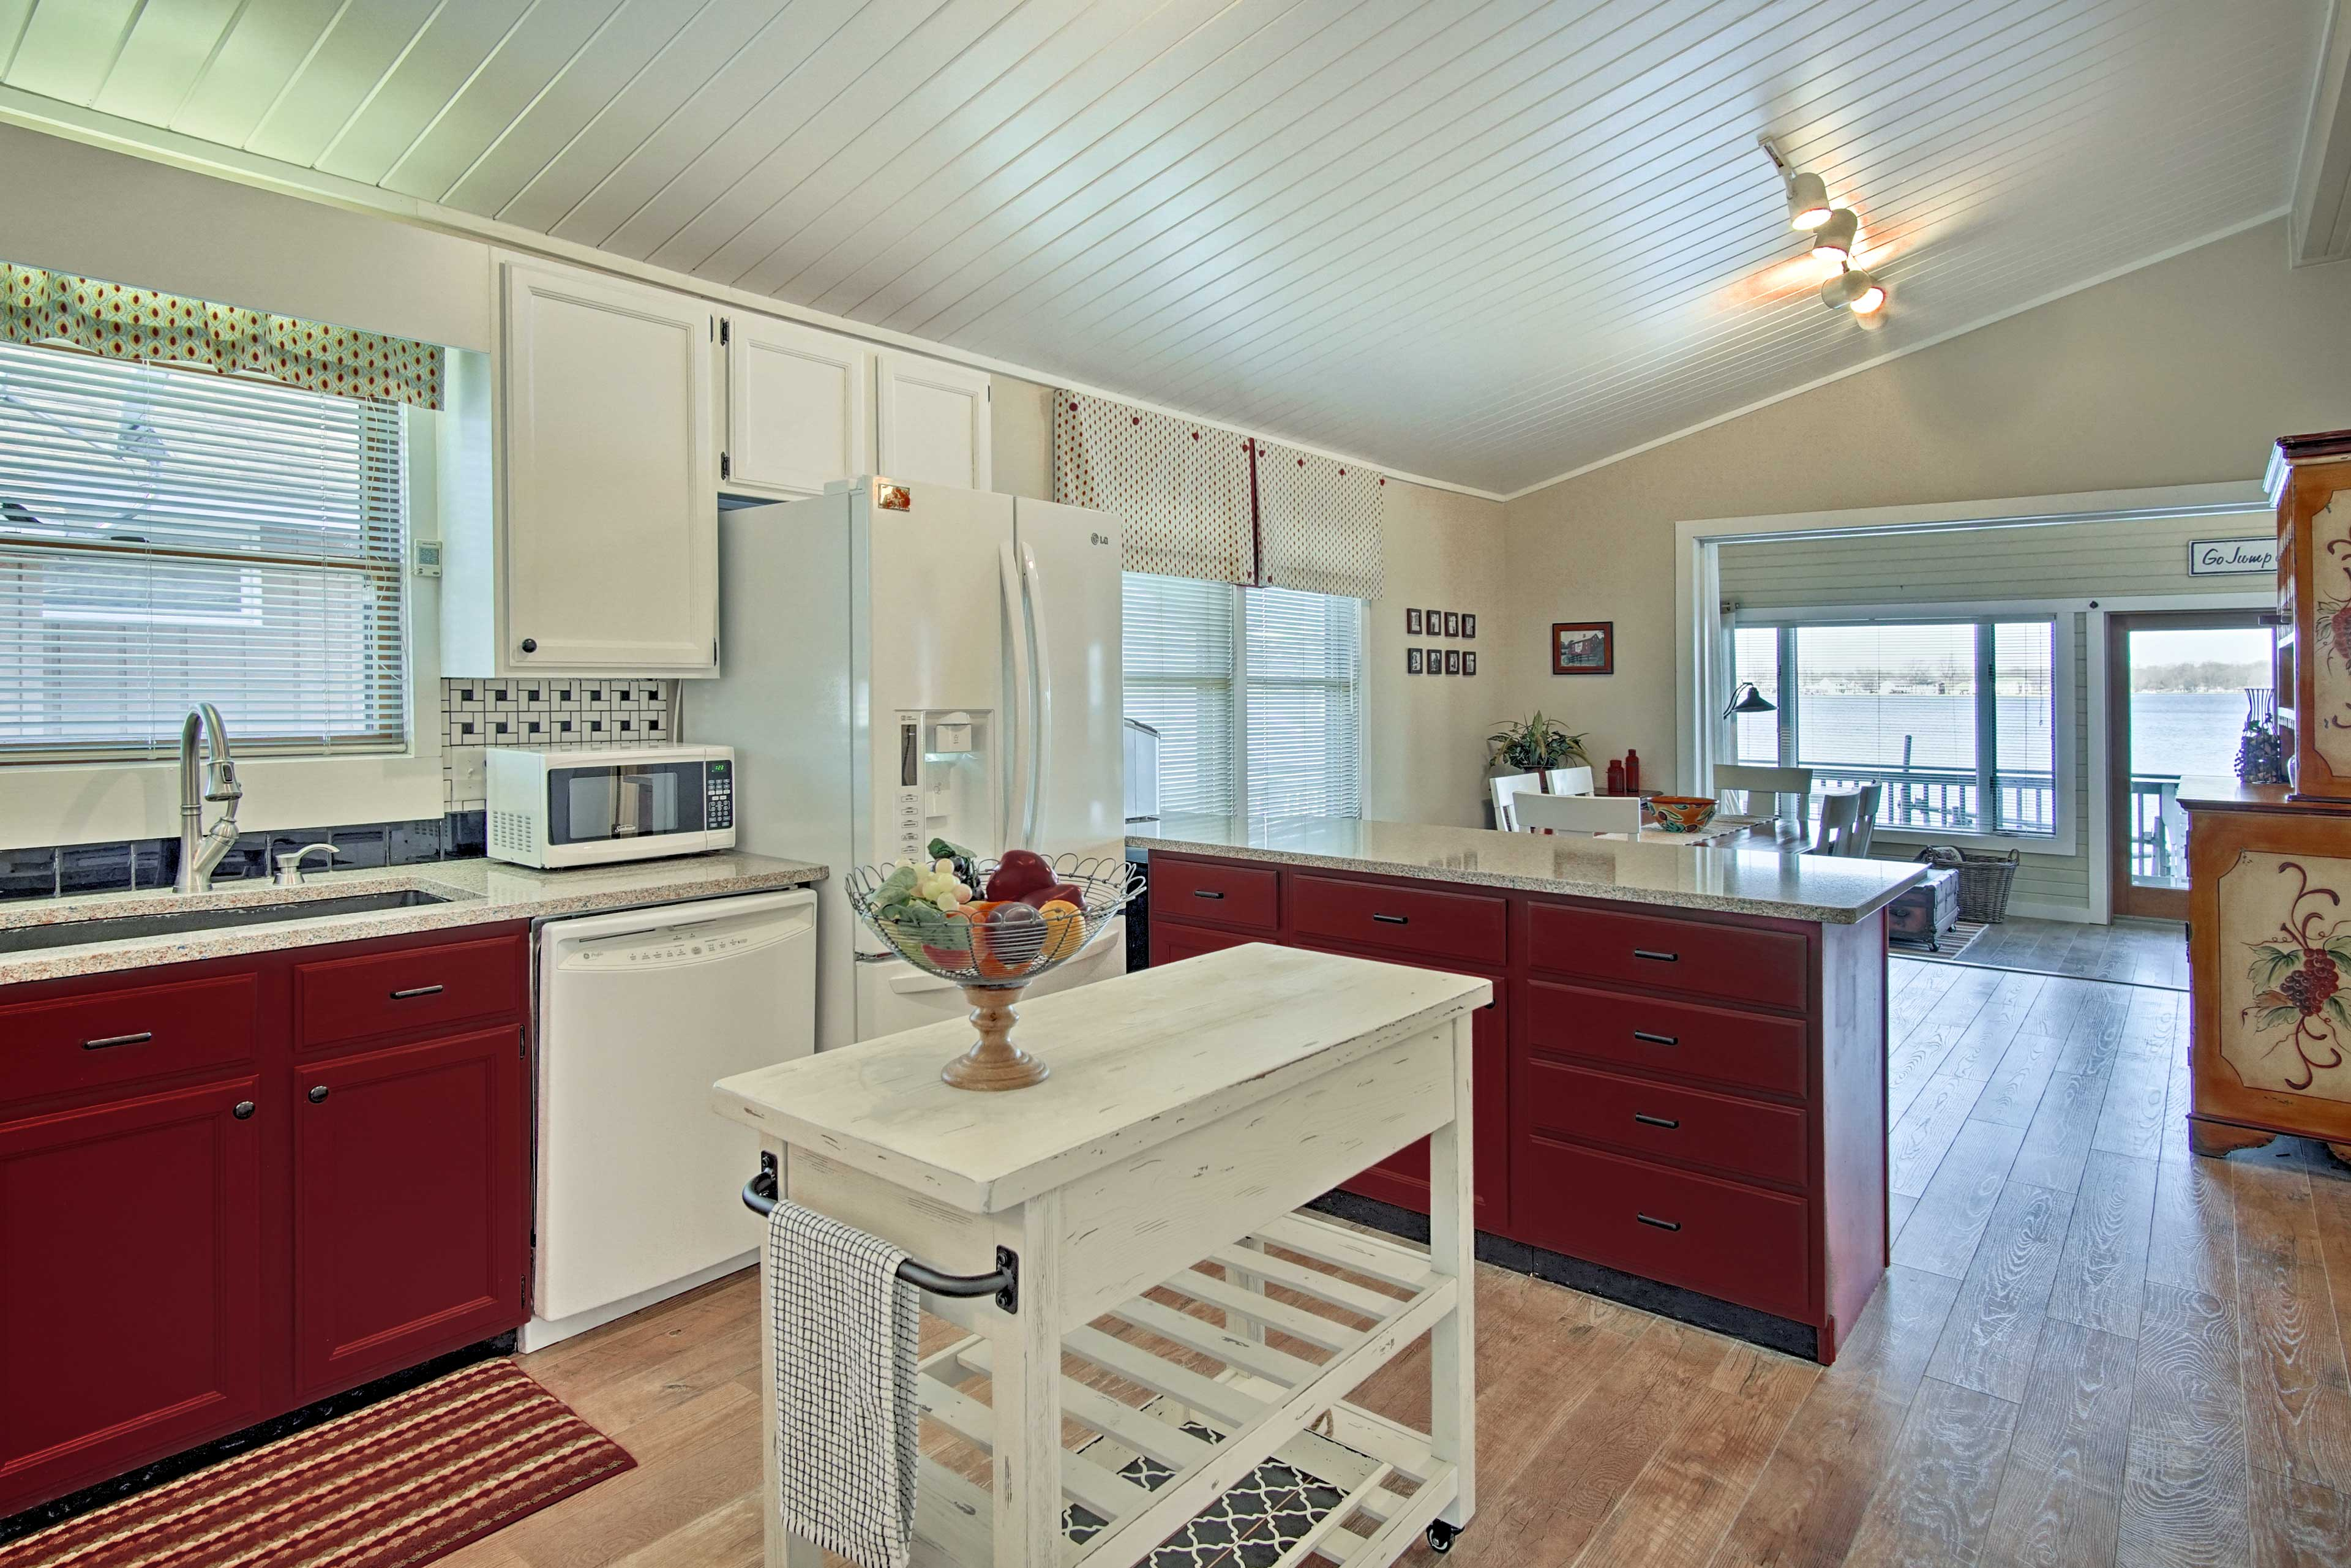 Whip up a tasty feast in the fully equipped kitchen.